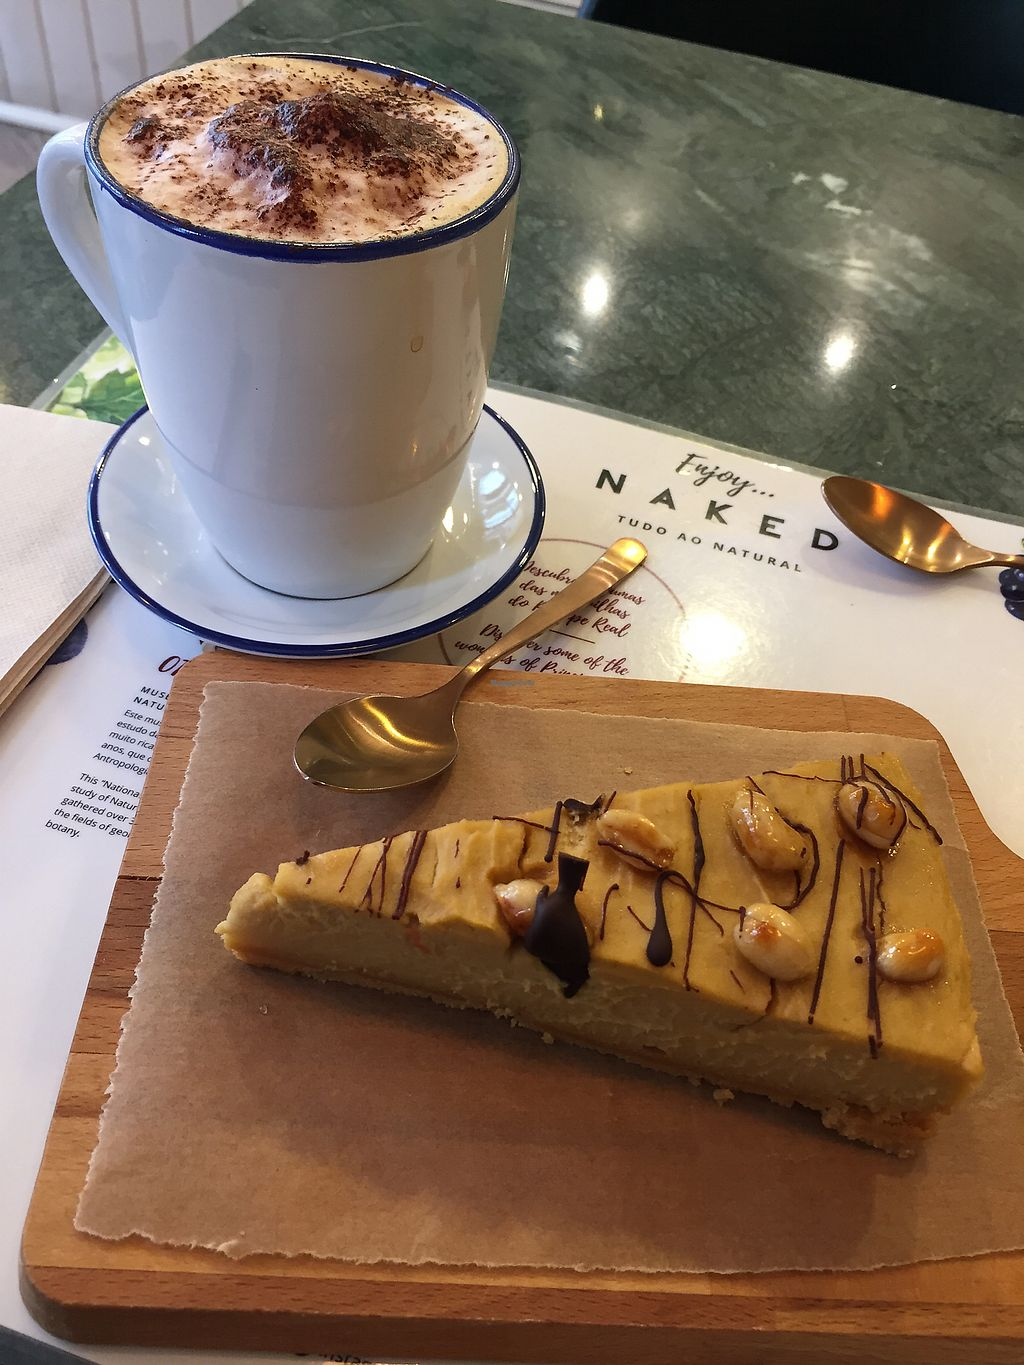 "Photo of Naked  by <a href=""/members/profile/AnaRitaPratas"">AnaRitaPratas</a> <br/>Peanut butter vegan tart  <br/> March 6, 2018  - <a href='/contact/abuse/image/110250/367519'>Report</a>"